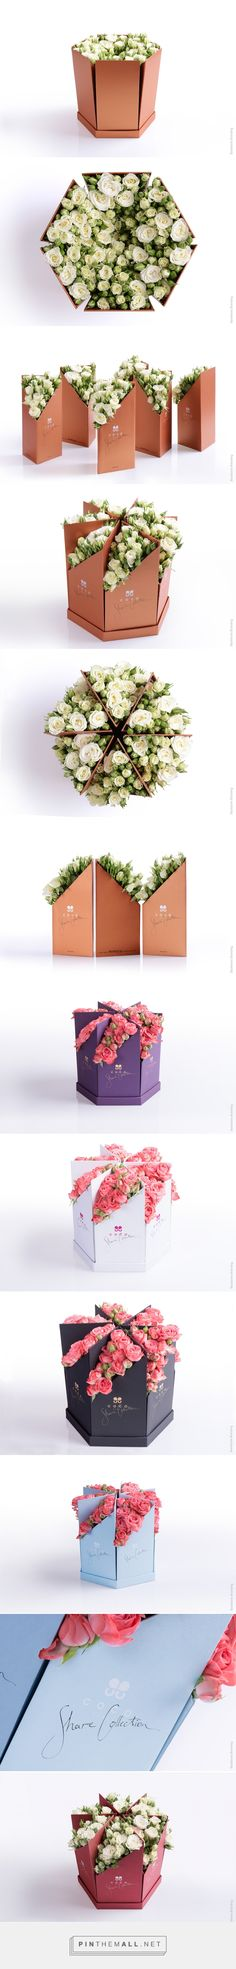 "Calligraphy, graphic design and packaging for Coco Fiori ""Share Collection"" on…"